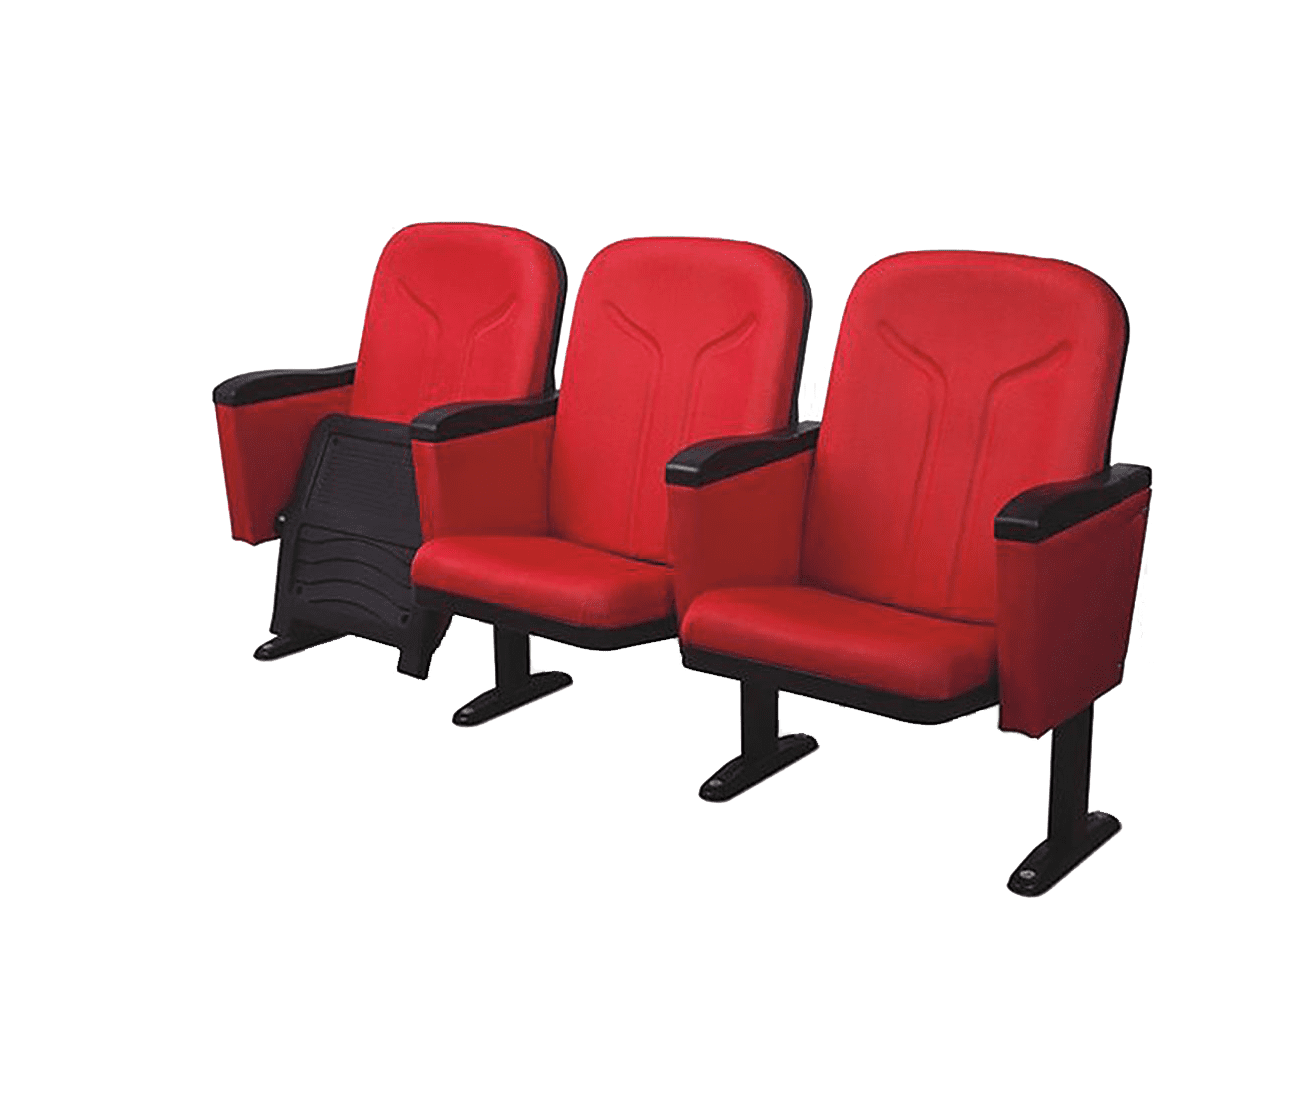 Auditorium seatings furniture